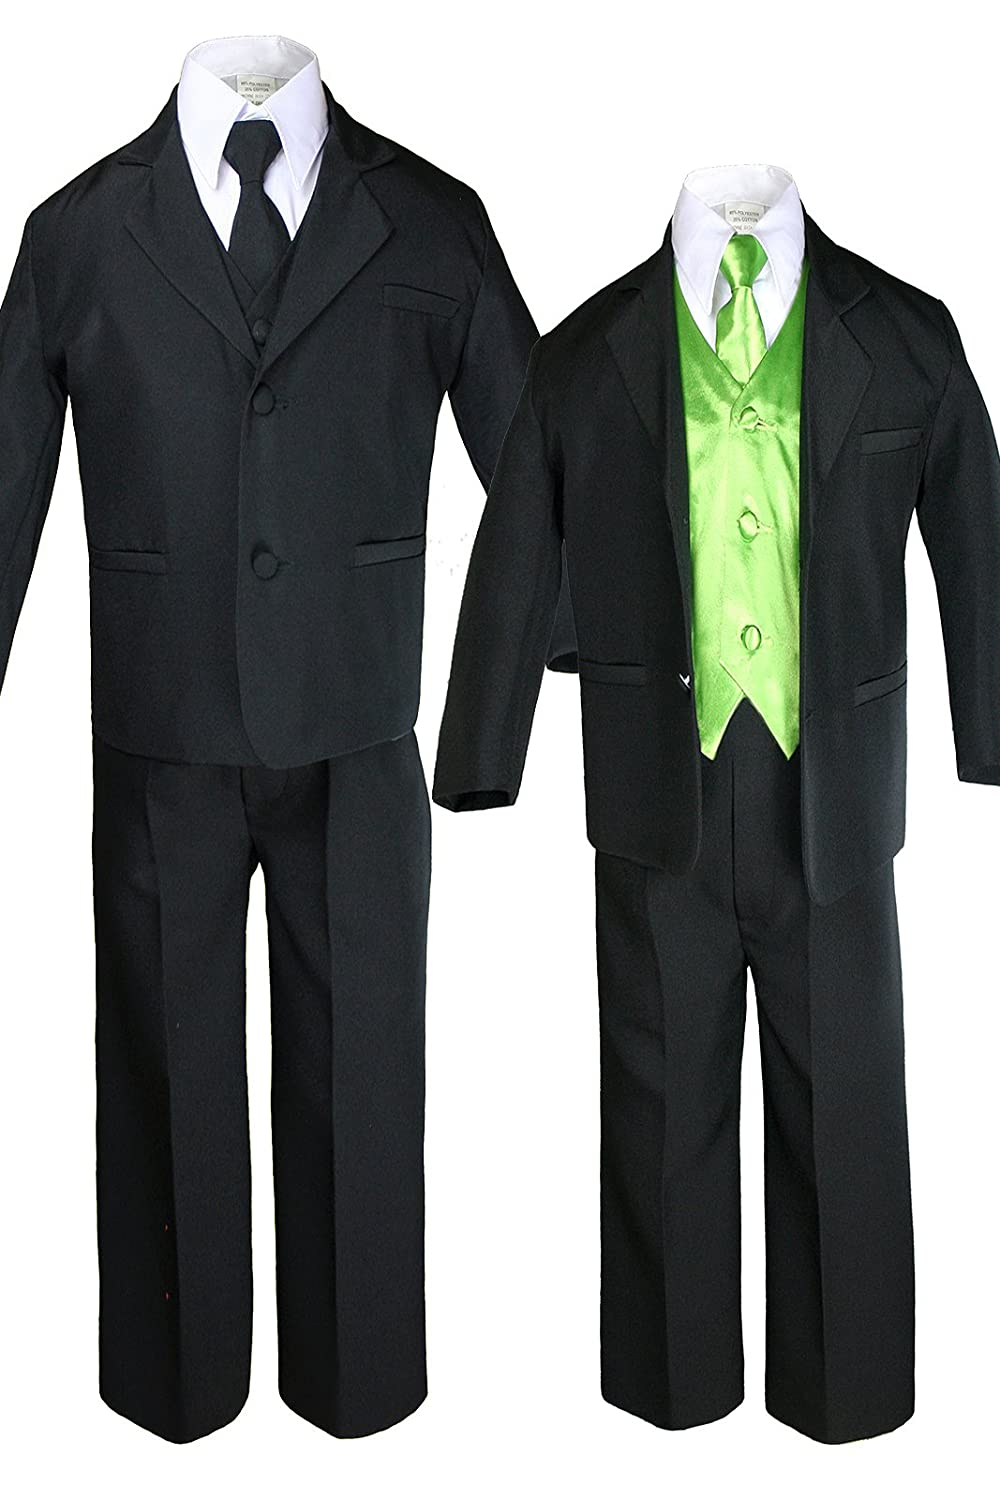 7pc Boys Black Suit with Satin Lime Green Vest Set from Baby to Teen (6)